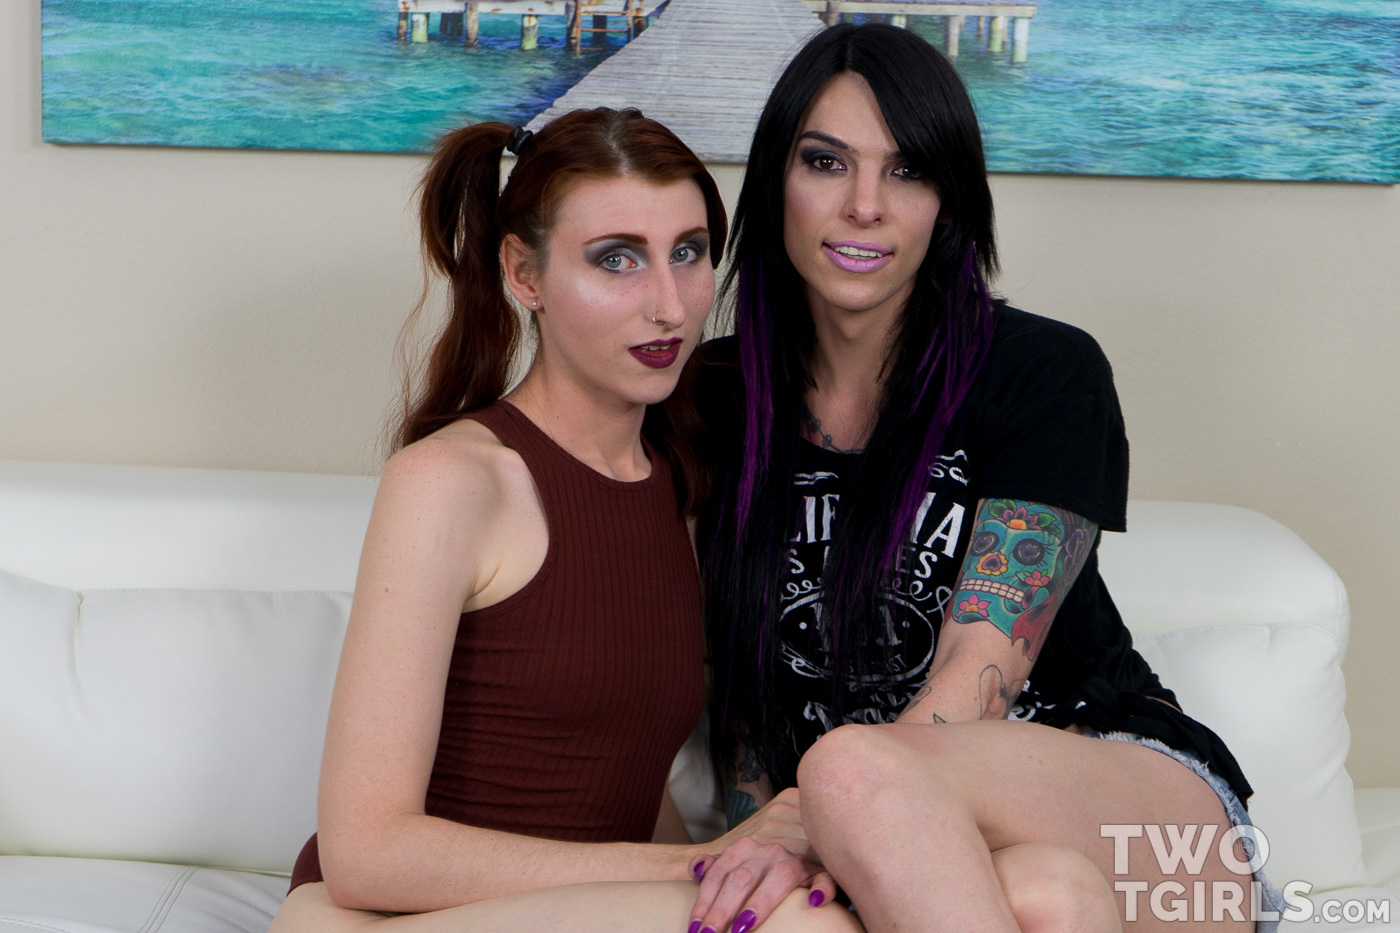 Jelena Vermillion and Chelsea Marie at Two T Girls